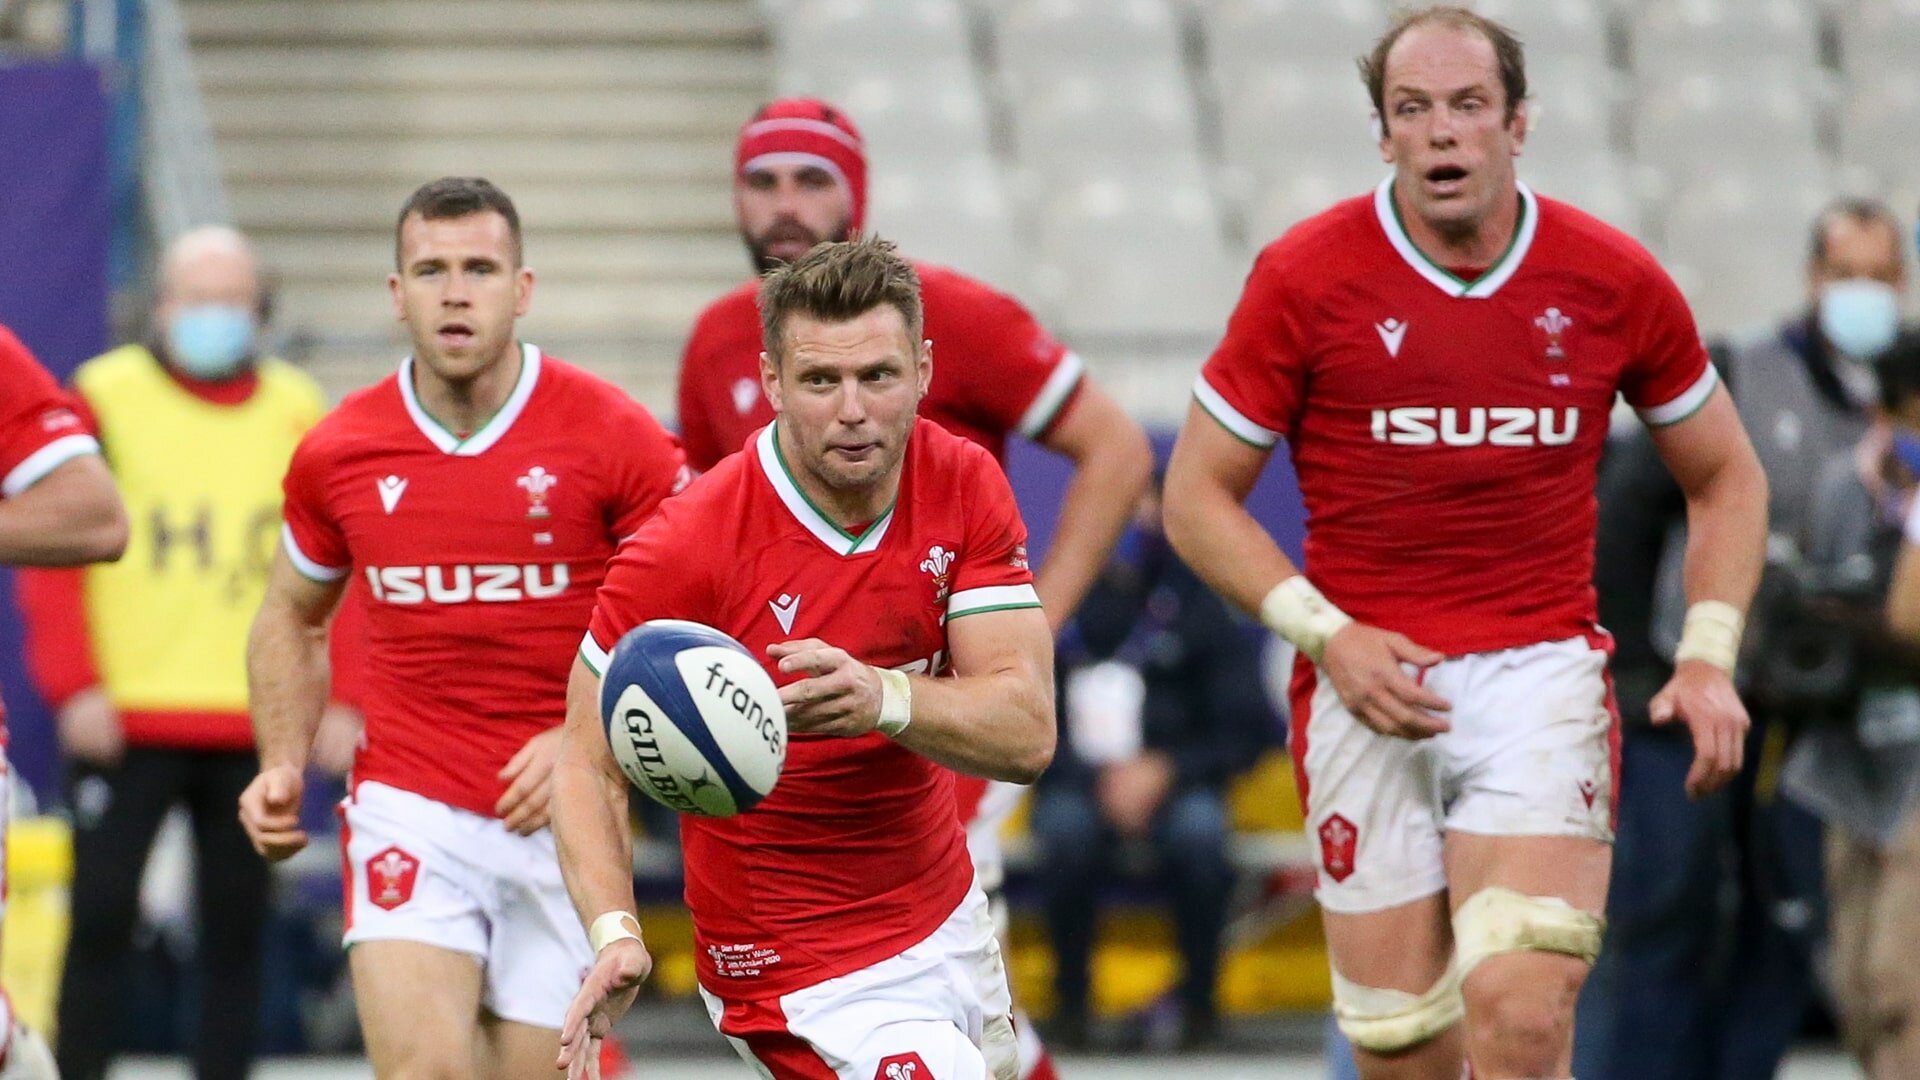 'Too many errors' - Wayne Pivac says Wales' rusty performance against France was a disappointment